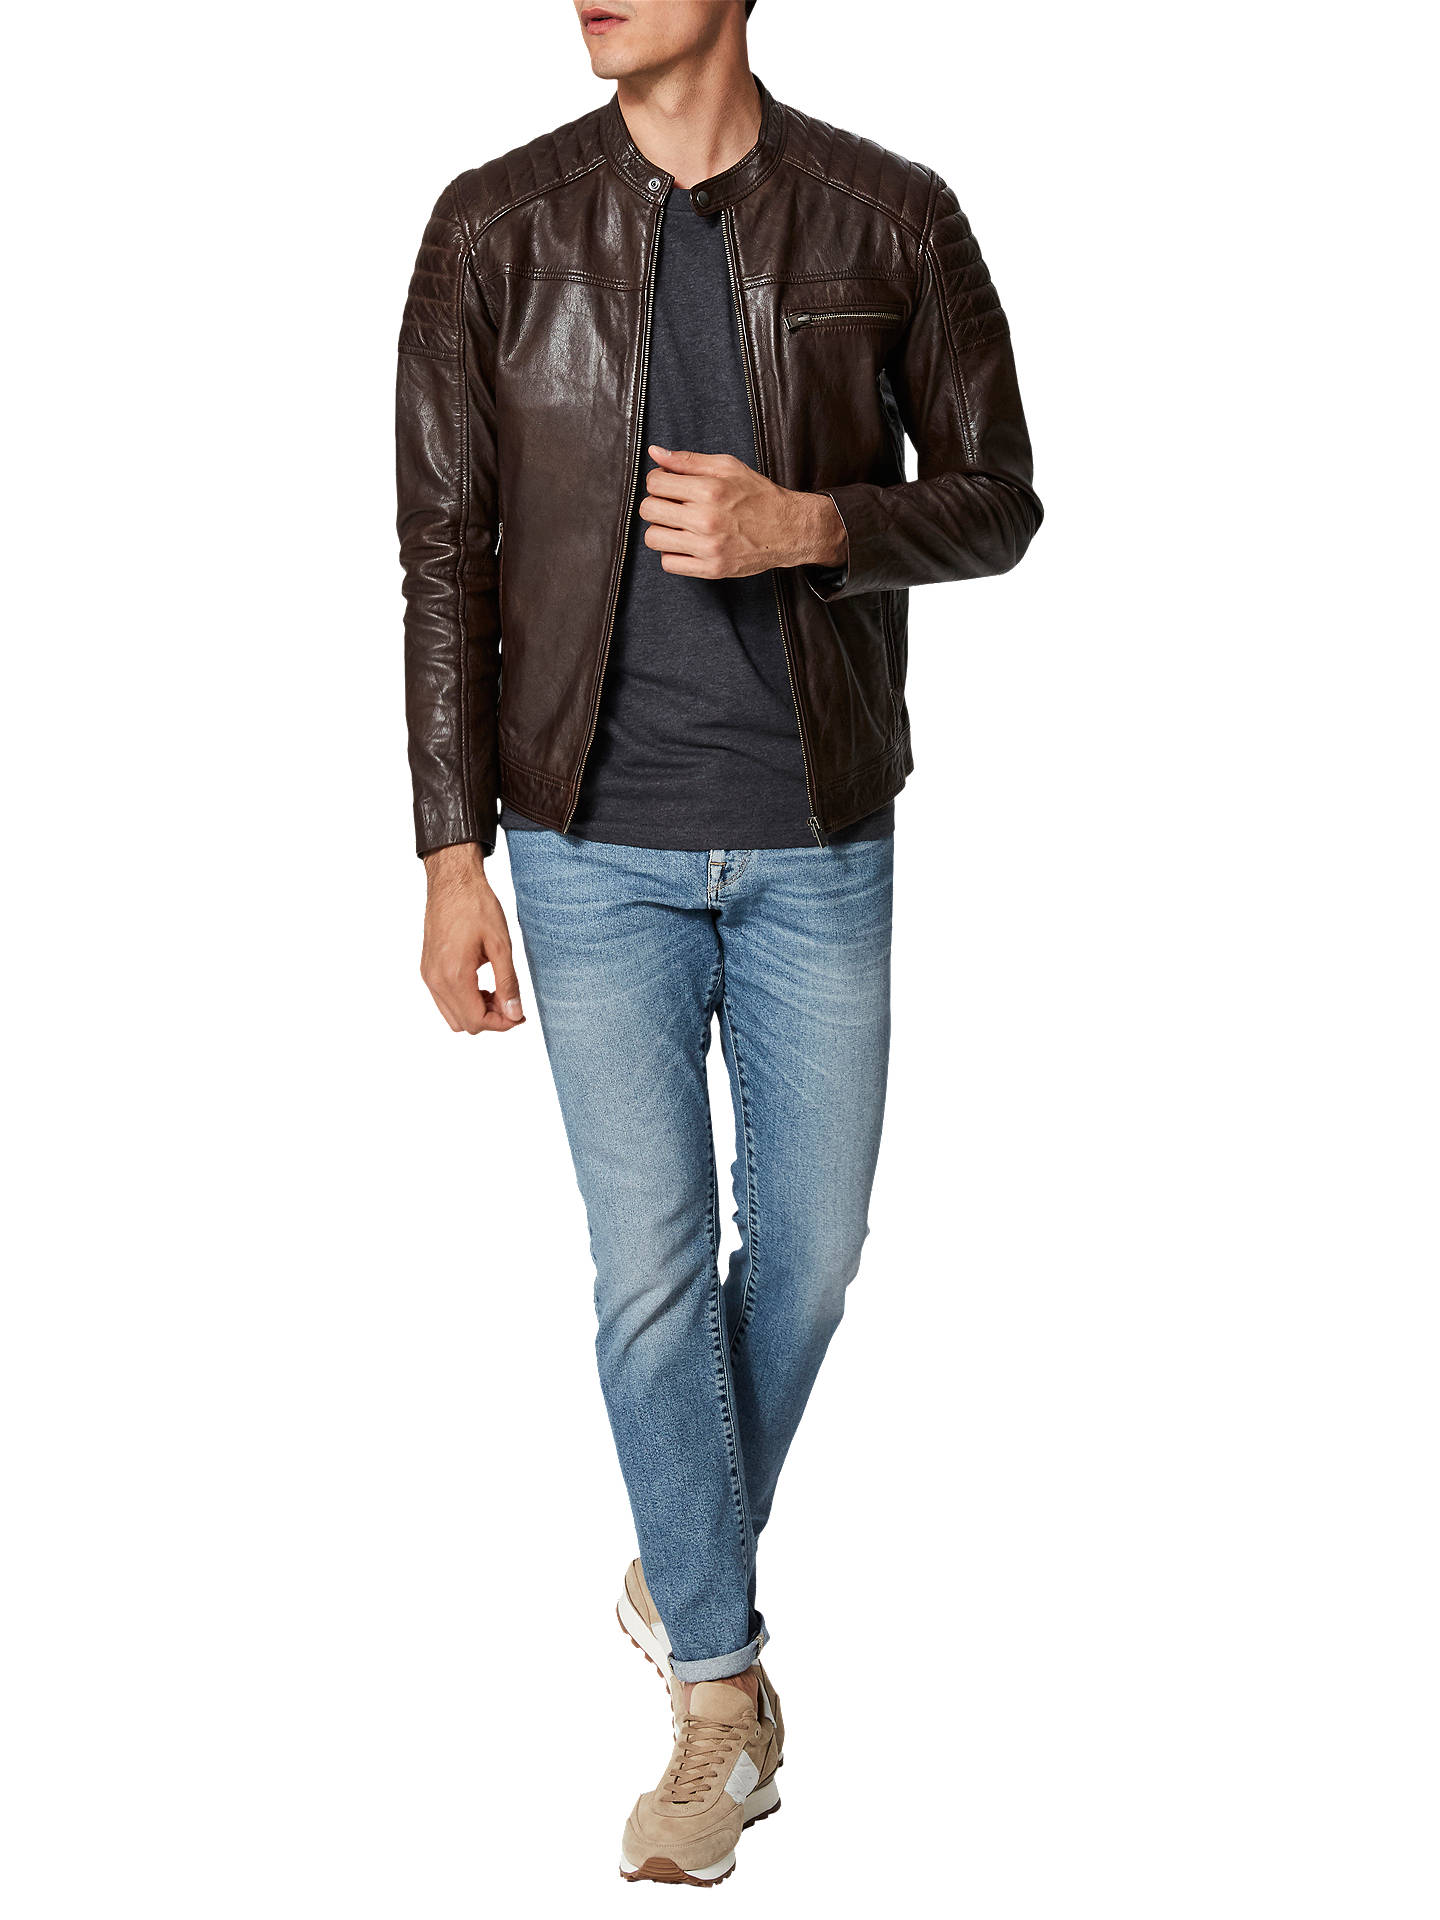 BuySelected Homme Leather Jacket, Brown, XXL Online at johnlewis.com